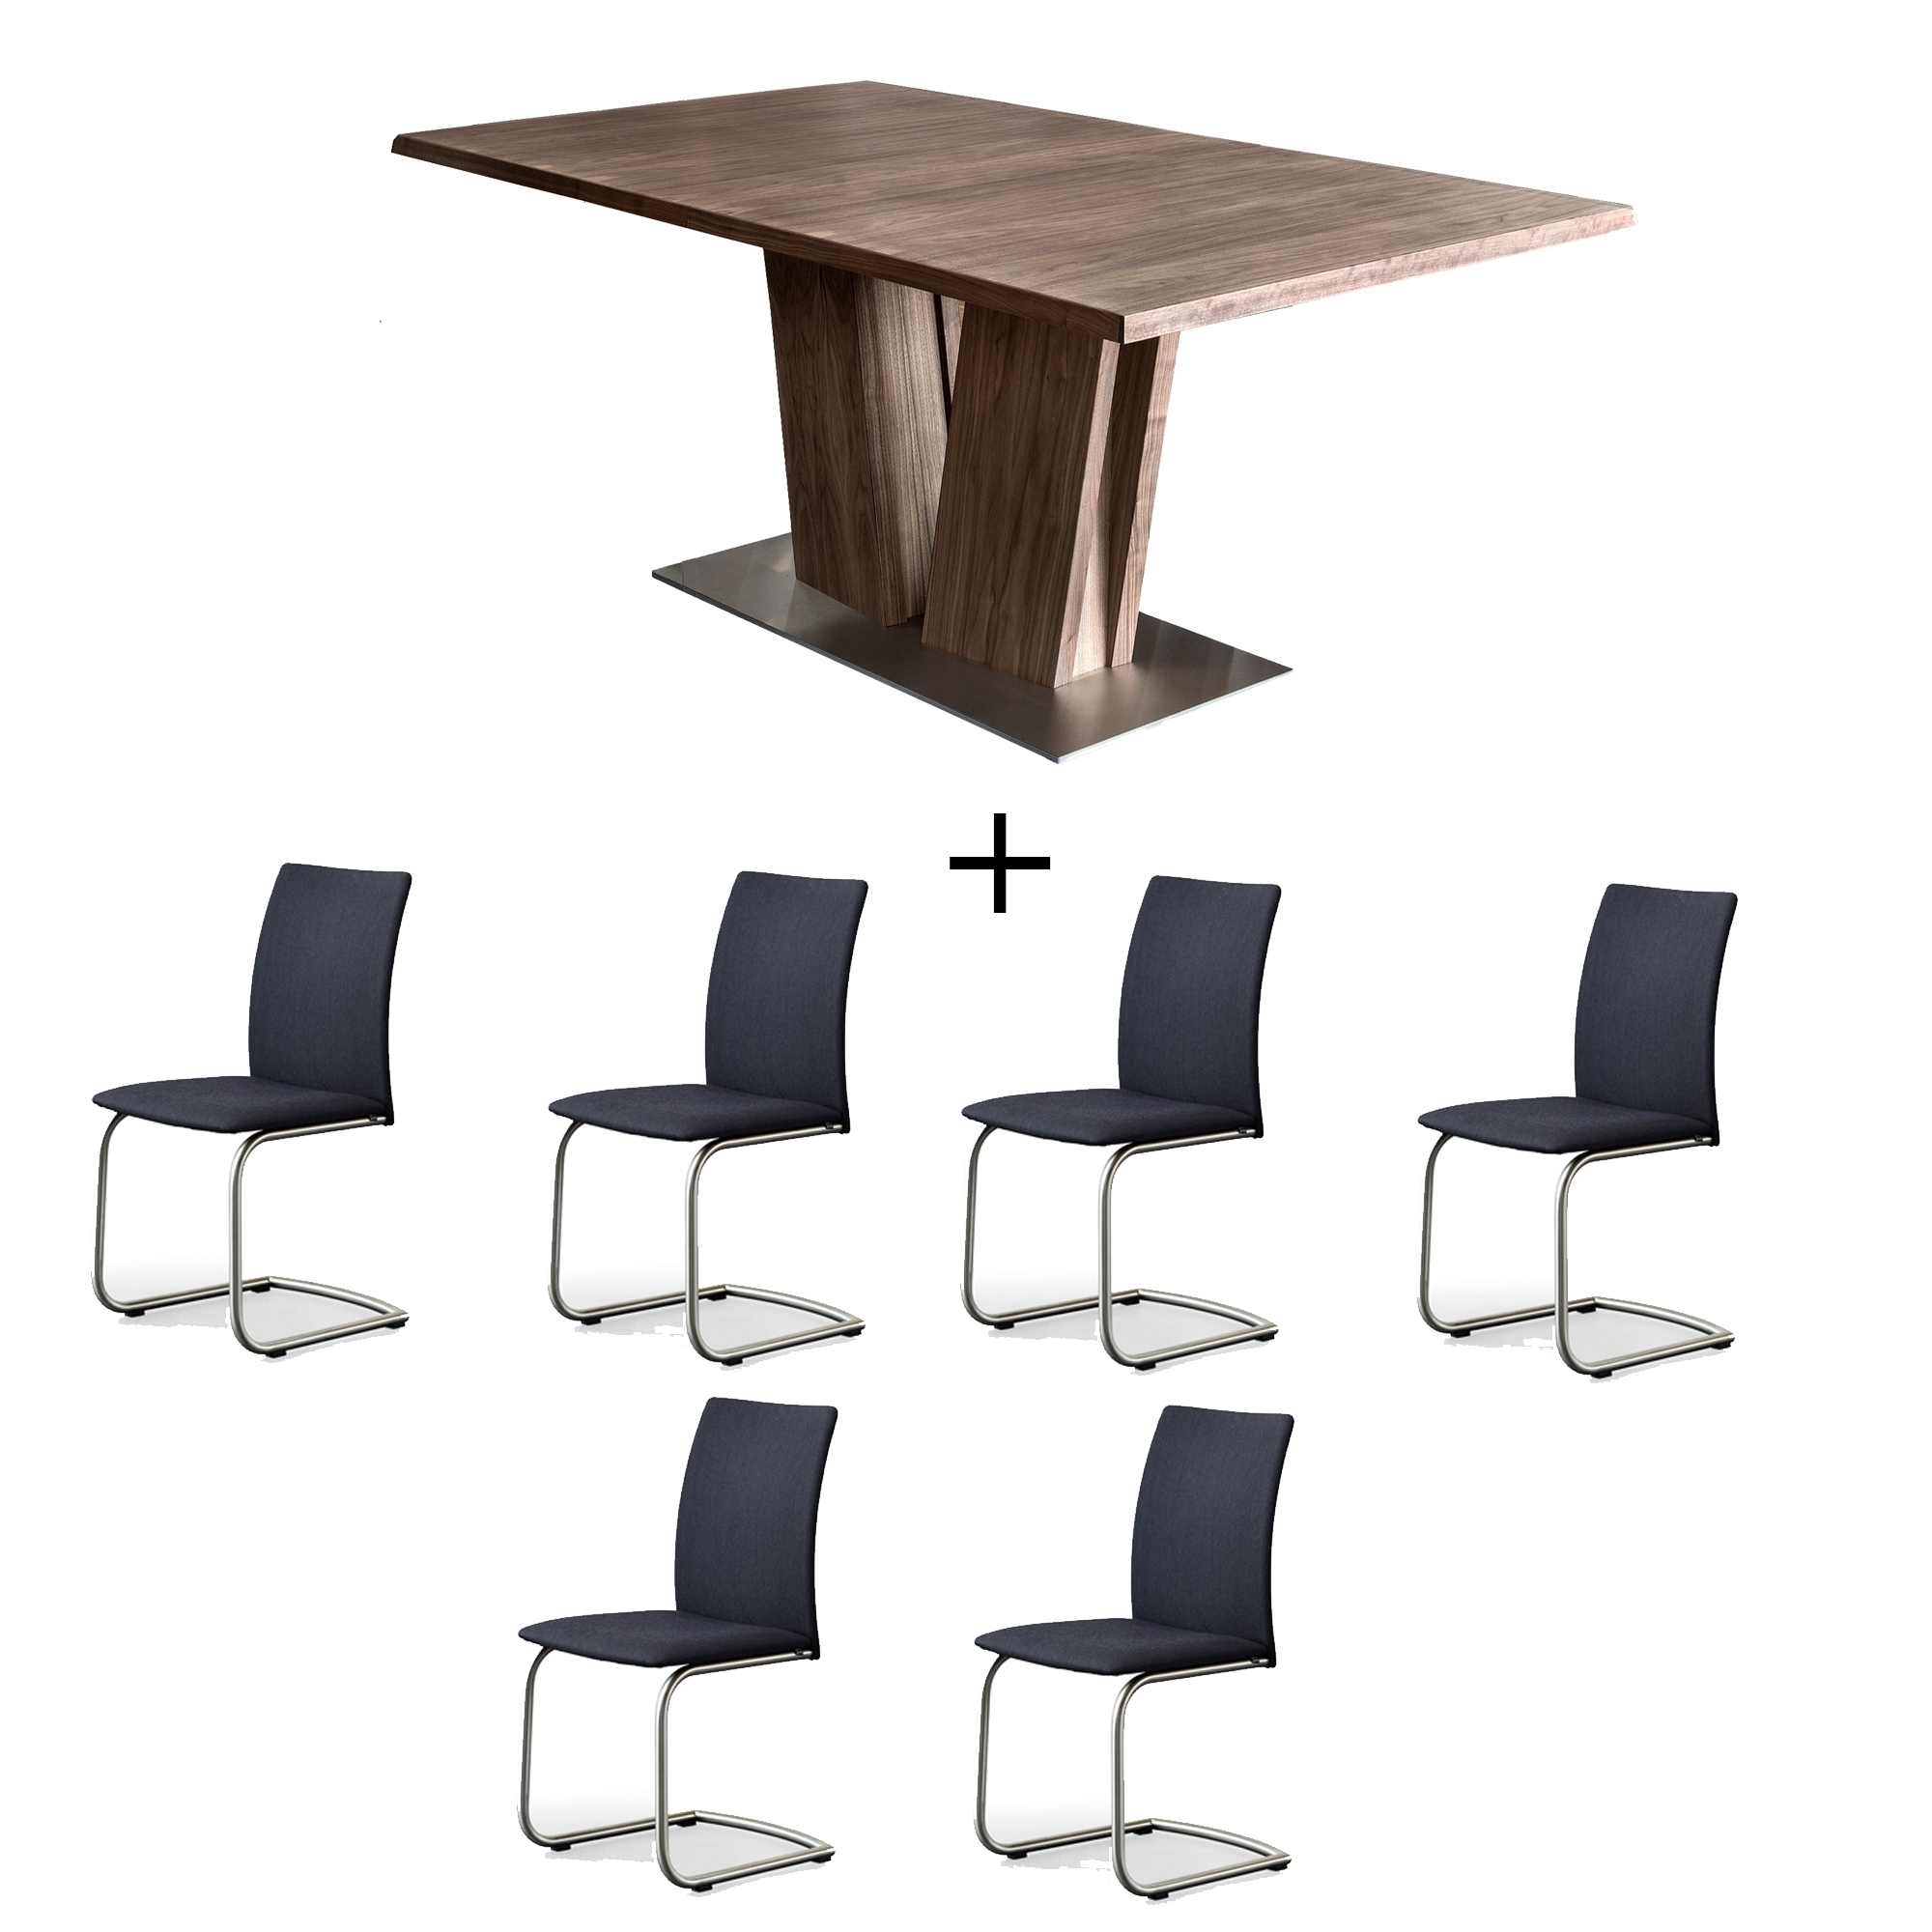 Walnut Dining Table And 6 Chairs For Famous Skovby Walnut Dining Table And 6 Chairs – Dining Sets – Cookes Furniture (View 18 of 25)